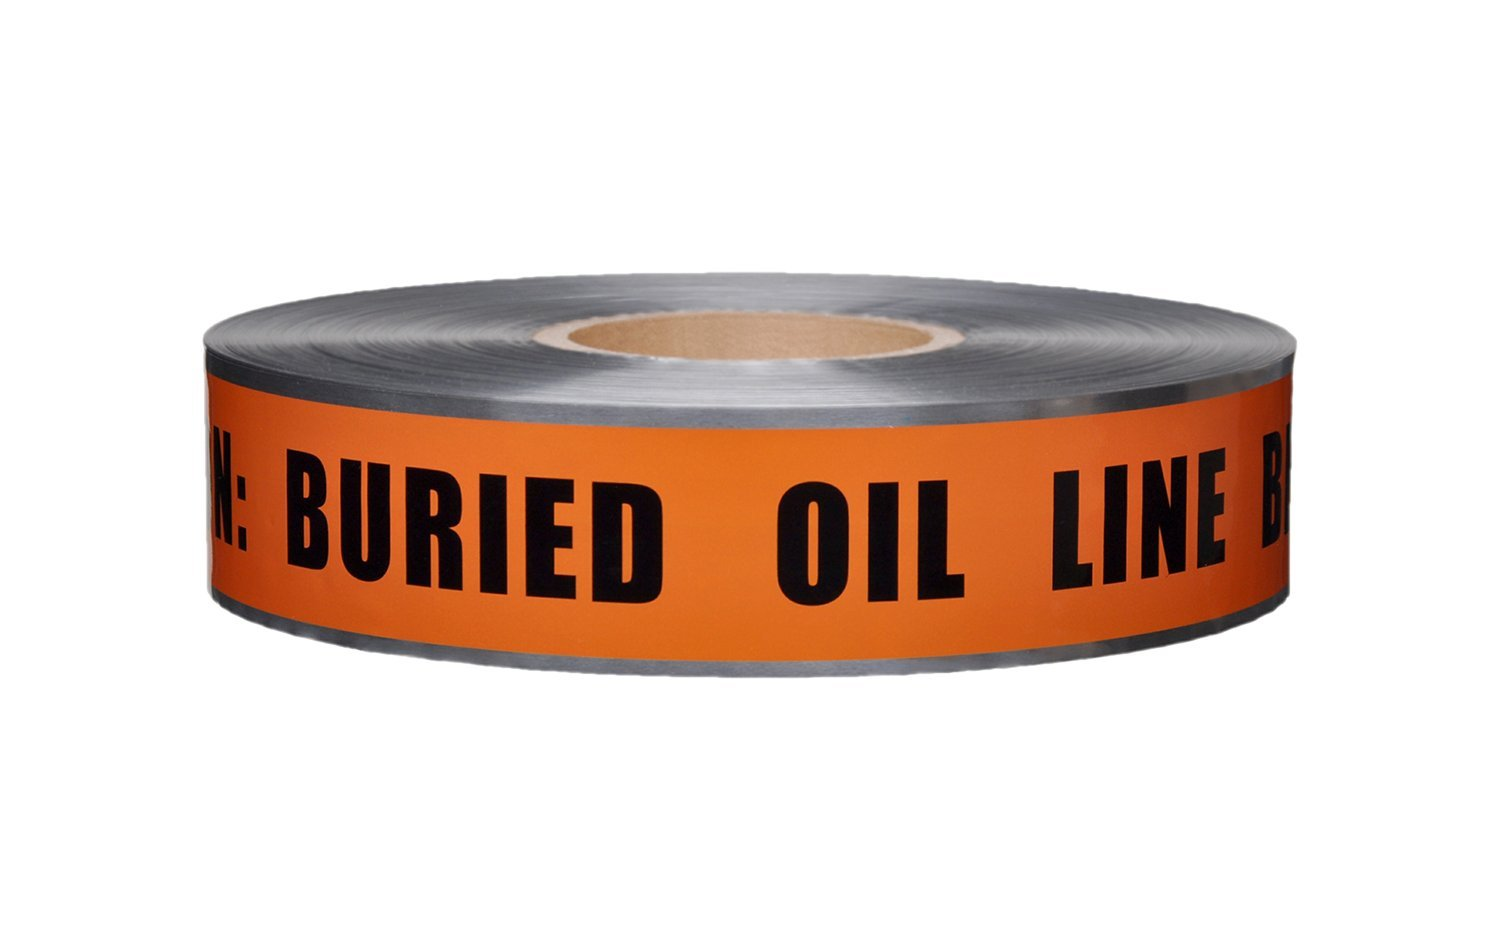 Presco D2105O1056 2'' x 1000' 5 mil Orange Poly/Aluminum Caution Buried Oil Line Below Electric Detectable Underground Tape, 8.5'' Height, 2'' Wide, 8.5'' Length